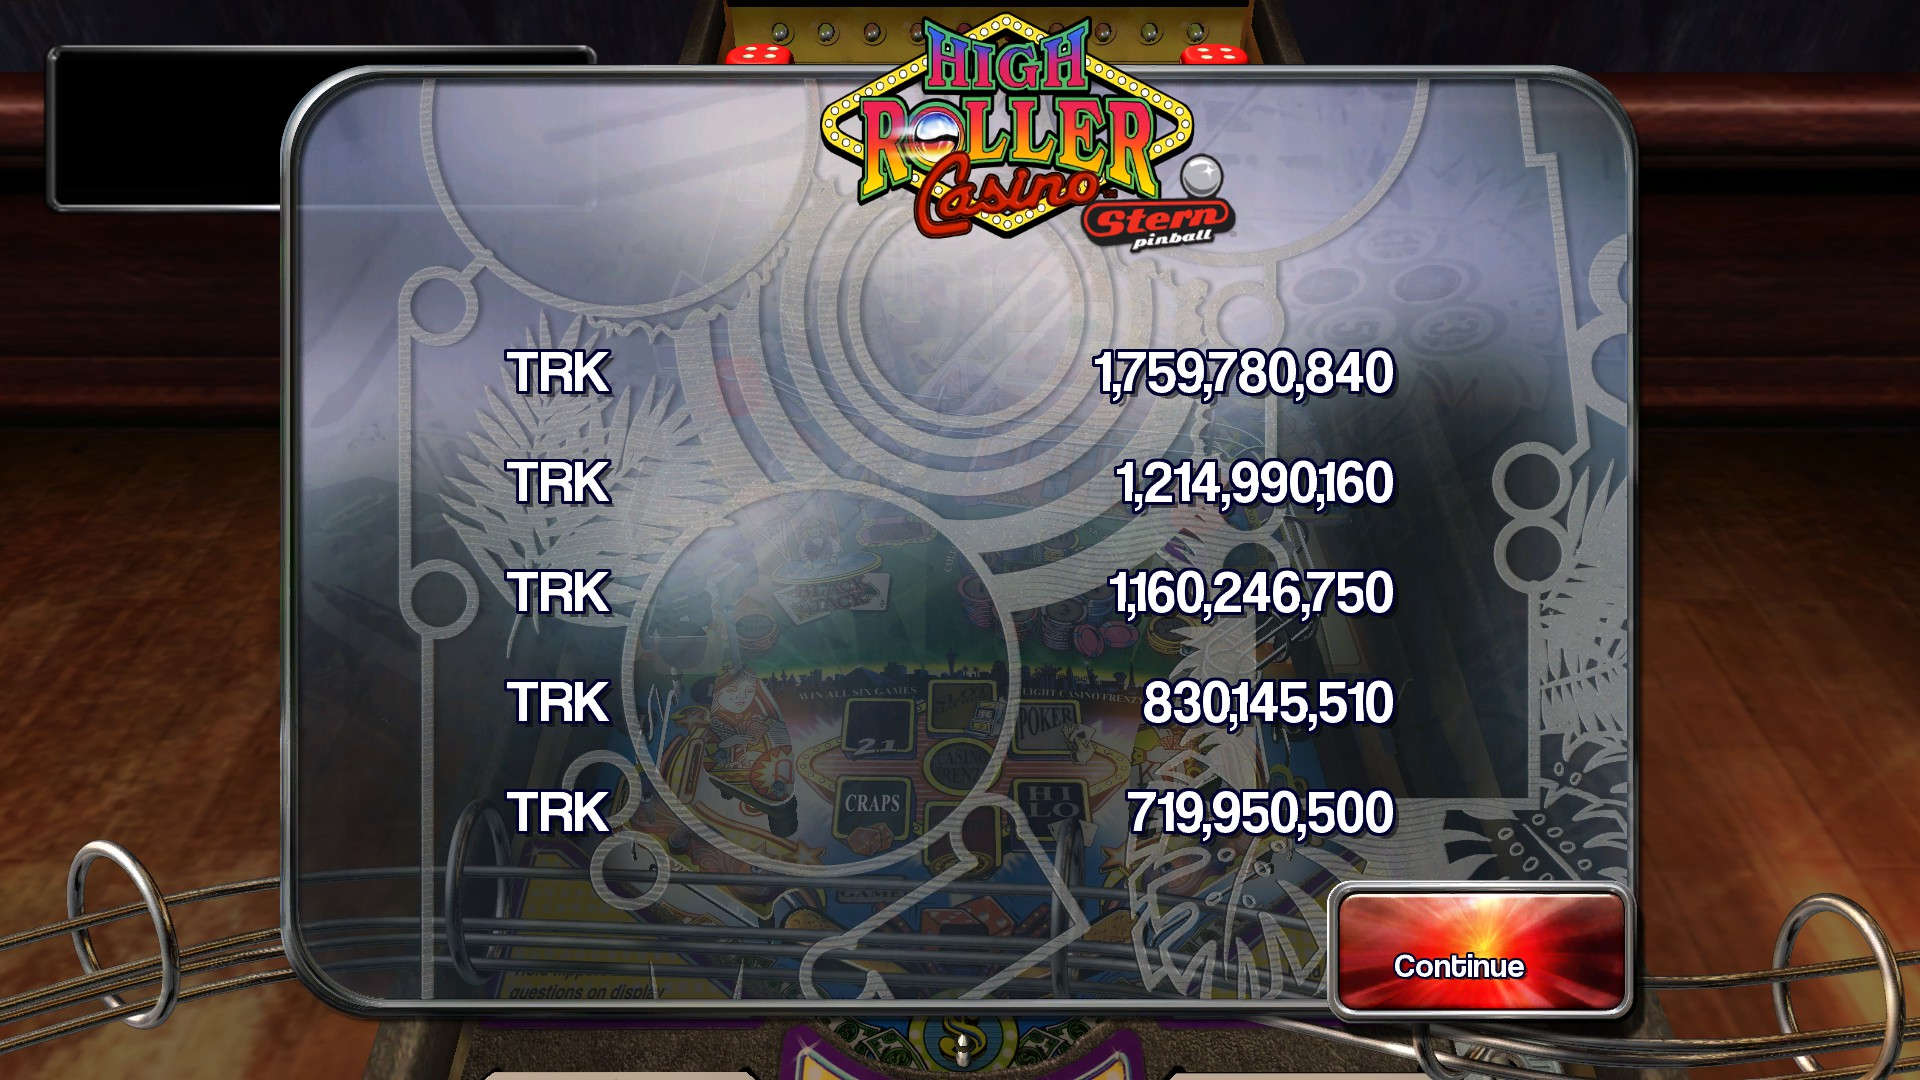 TheTrickster: Pinball Arcade: High Roller Casino (PC) 1,759,780,840 points on 2016-05-11 10:10:18